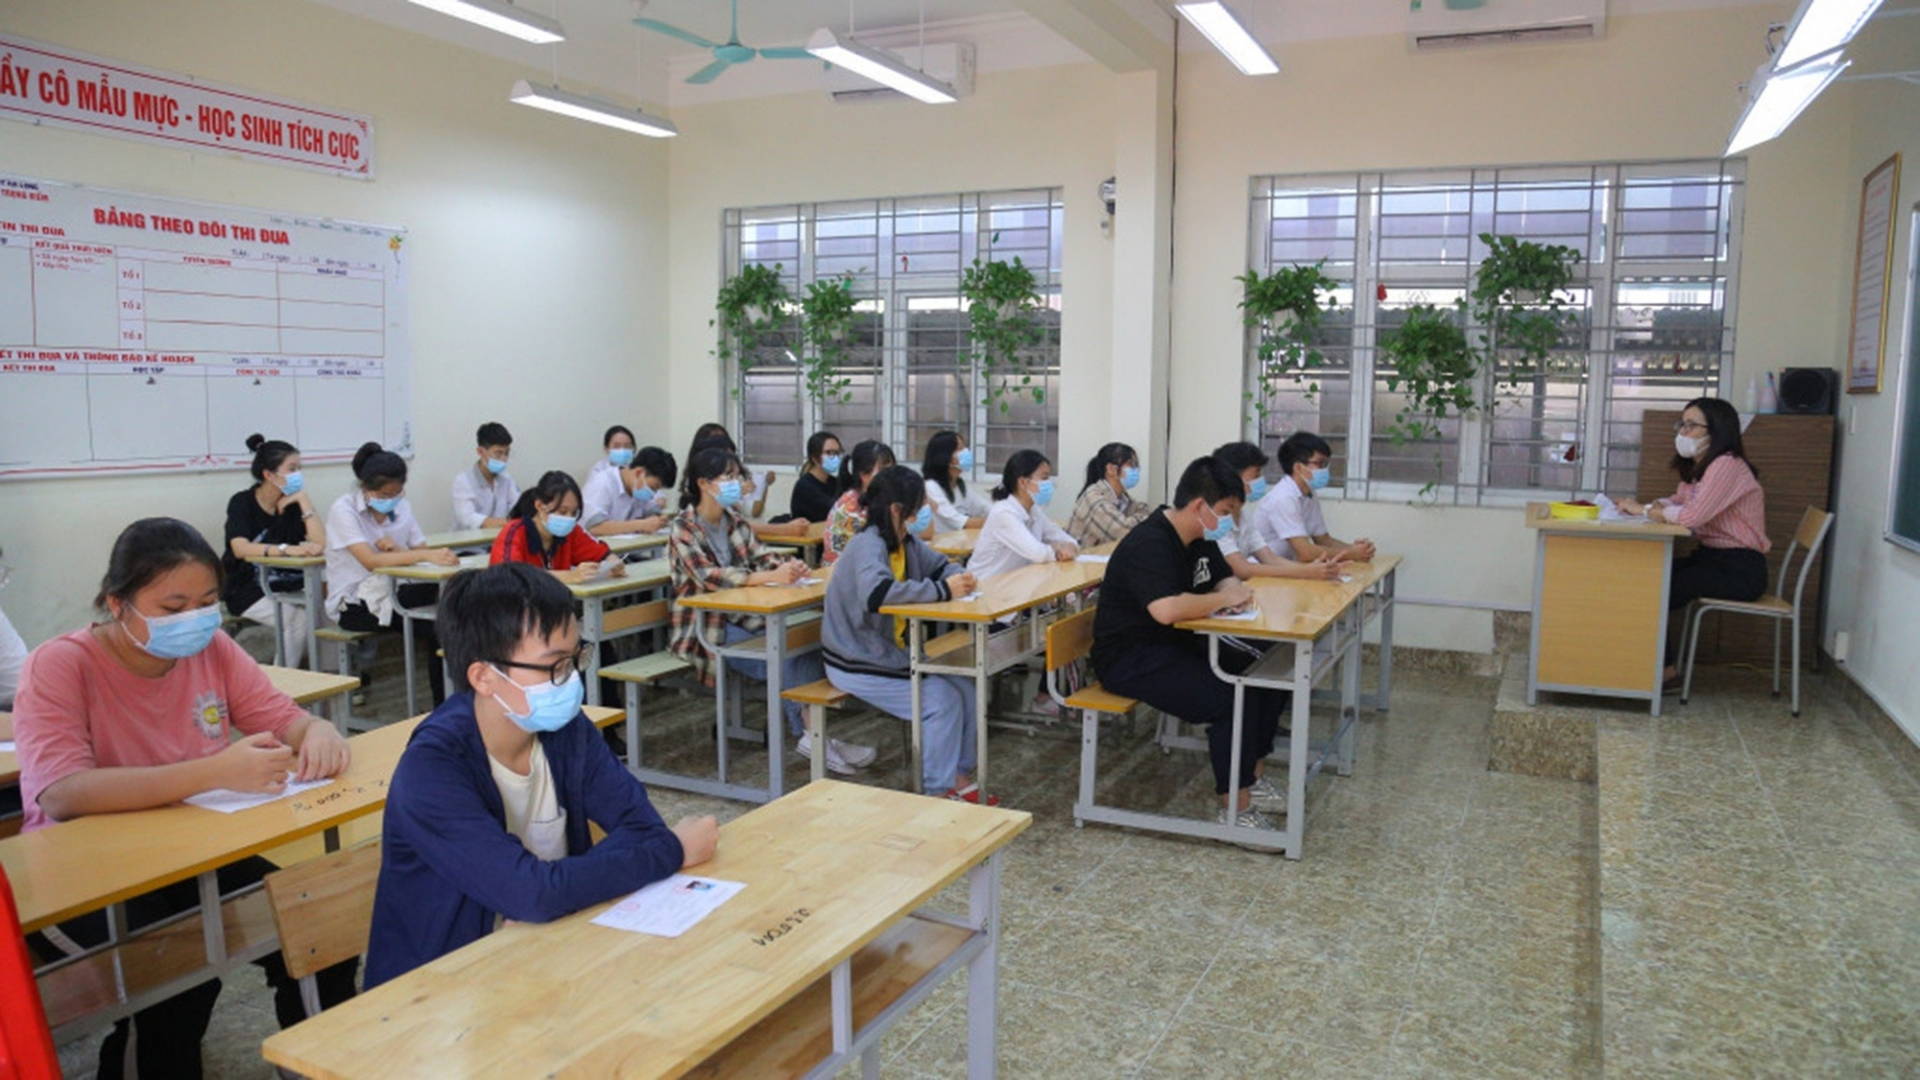 Look up exam scores for class 10 in Quang Ninh province in 2021 1